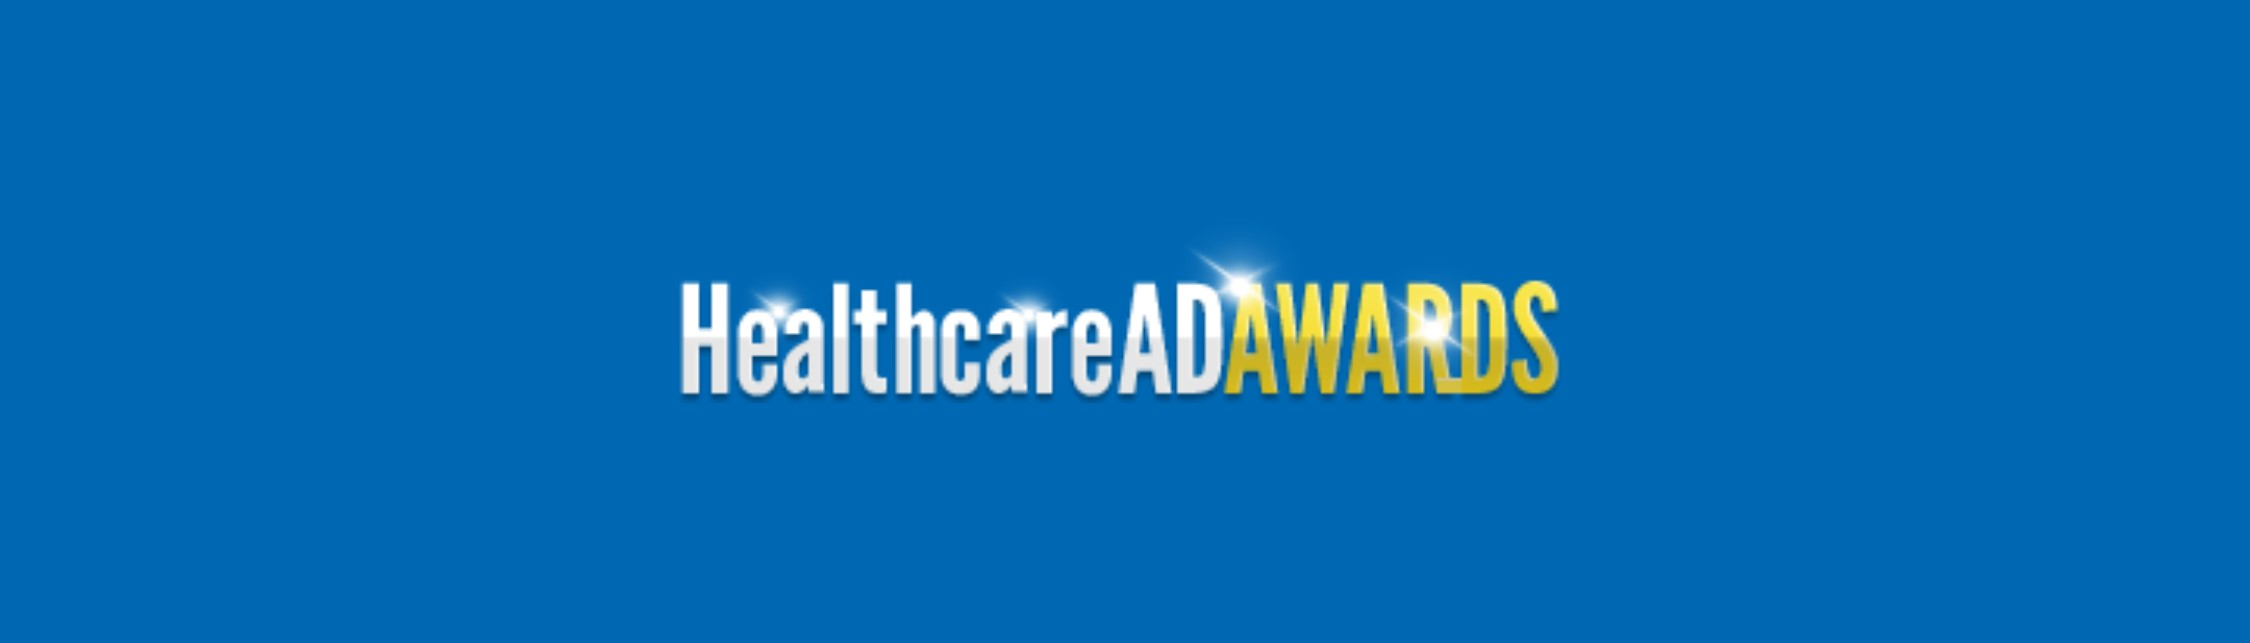 Healthcare Advertising Awards 2019